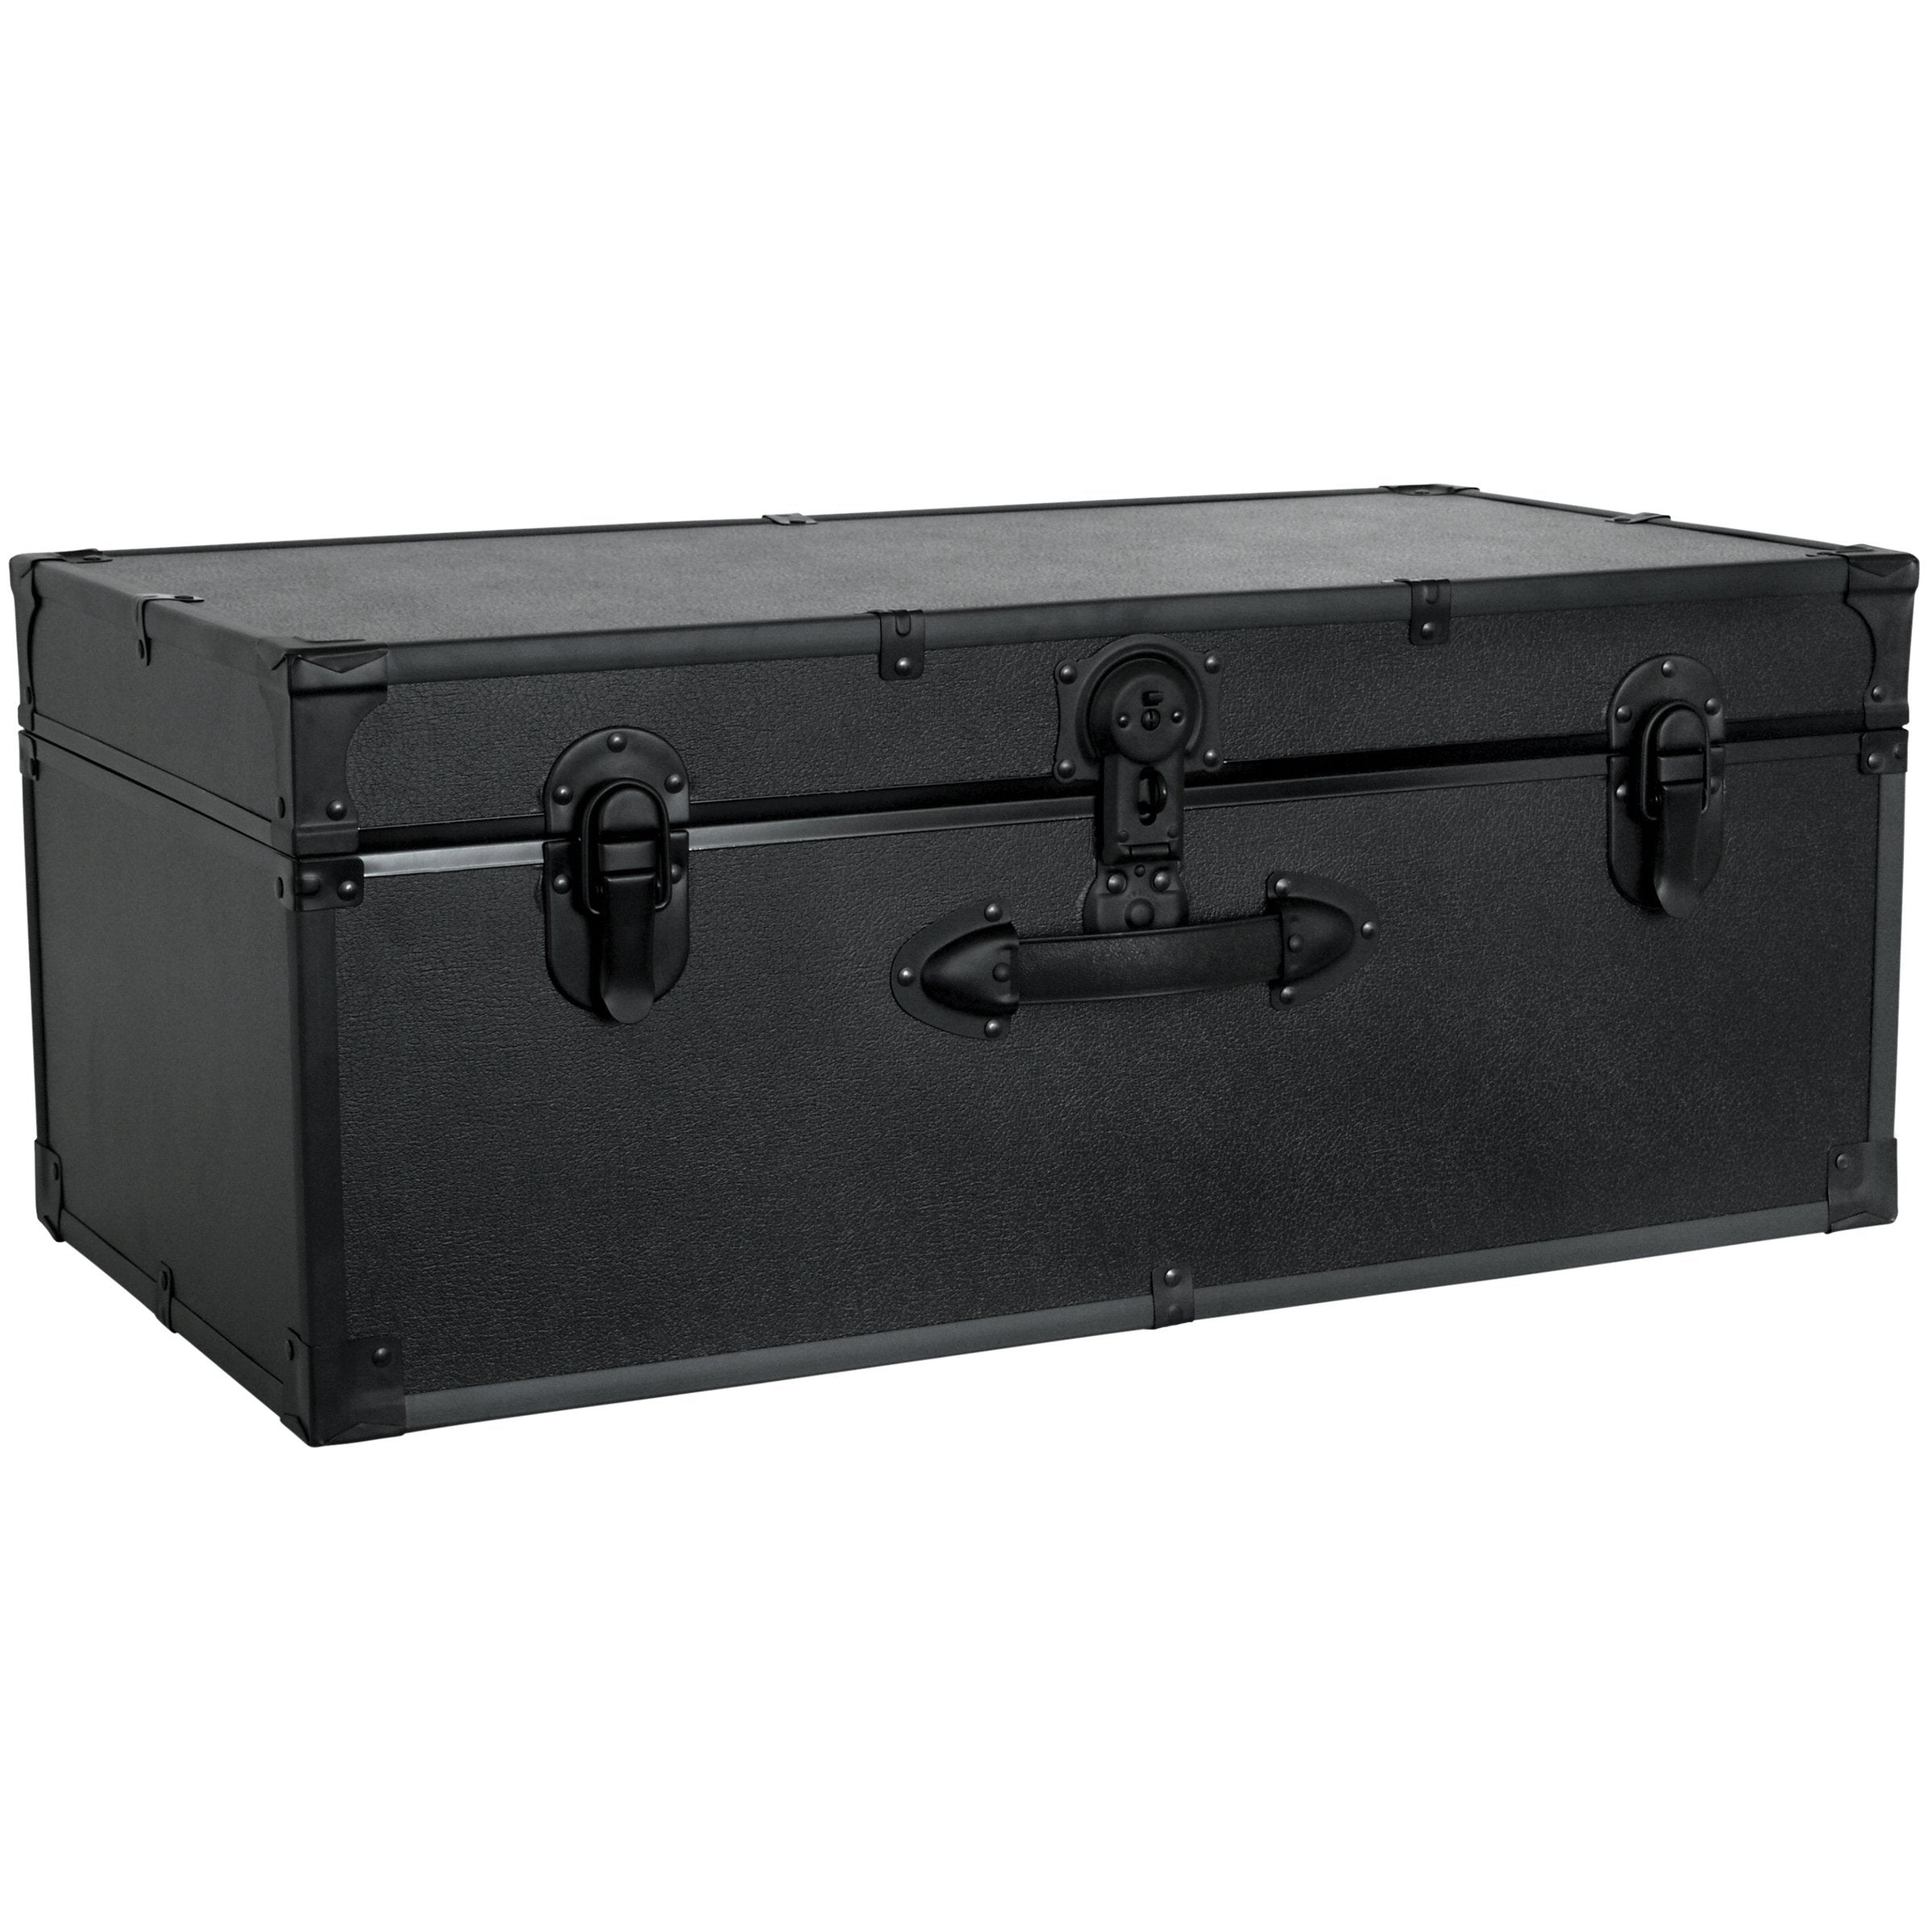 "Footlocker Trunk, 30"", Black Hardware, Black"